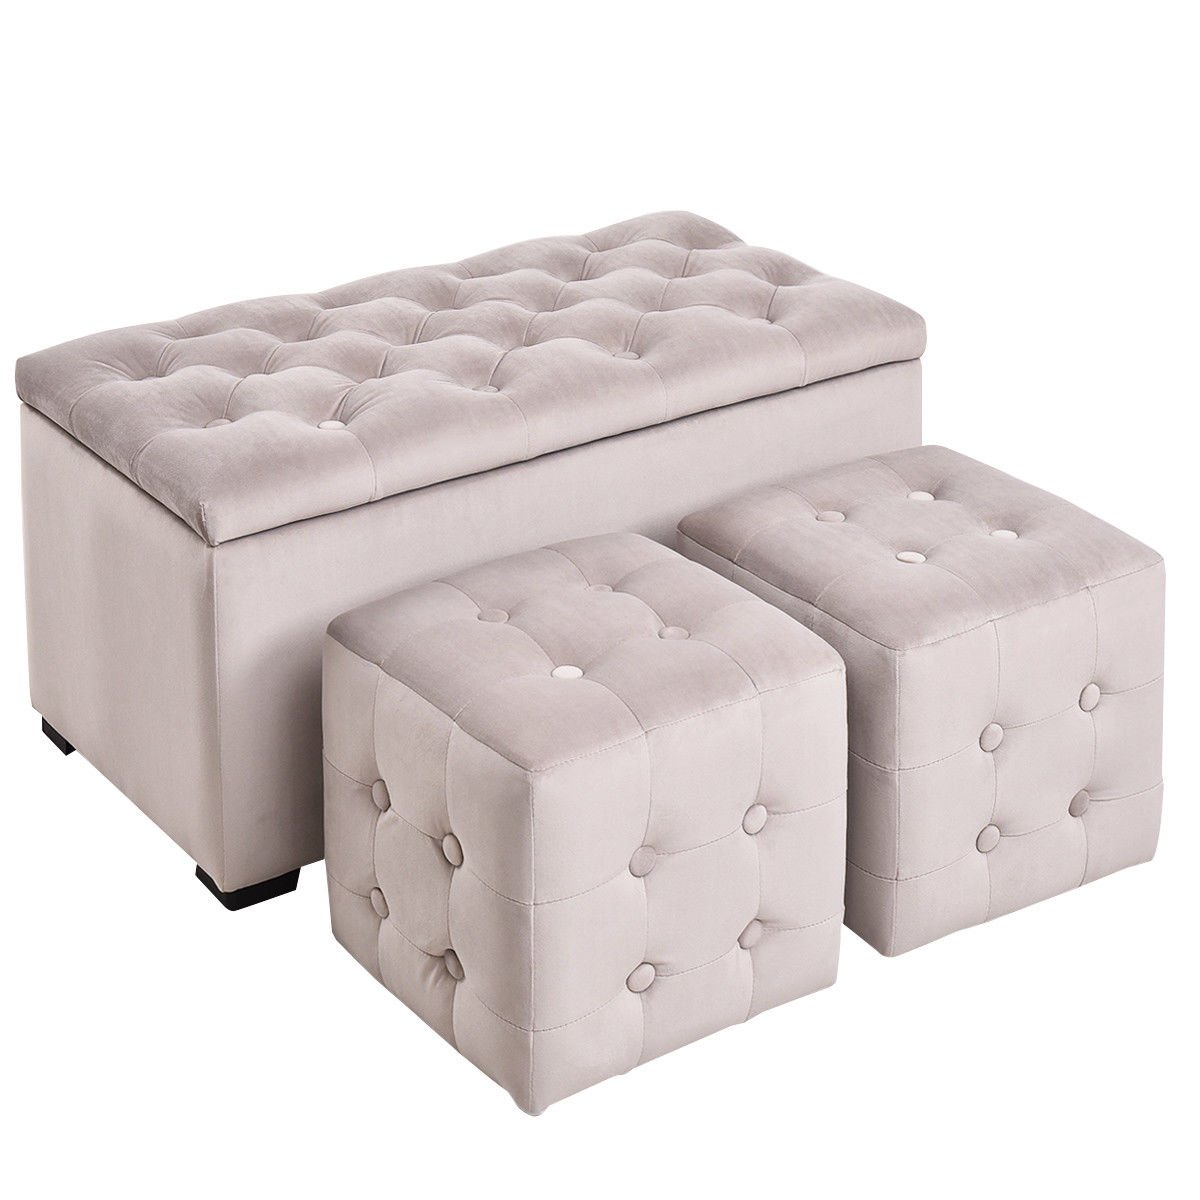 Amazon com giantex 3 piece tufted storage bench with 2 cube ottoman set microfiber home furniture ottoman bench with stool seatgray kitchen dining